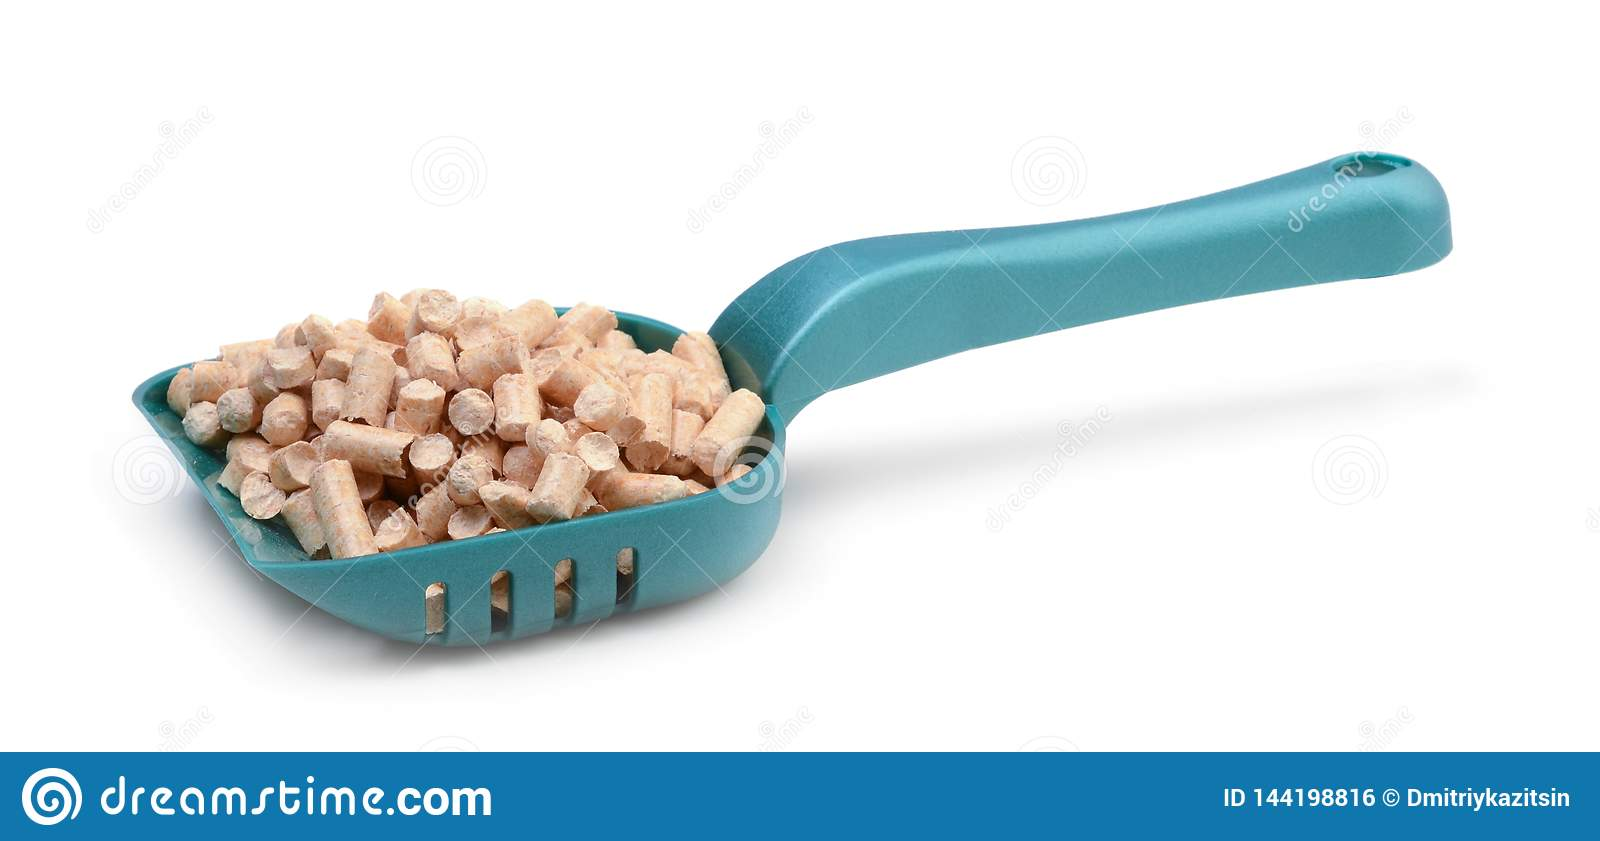 Plastic scoob with cat litter isolated on white background